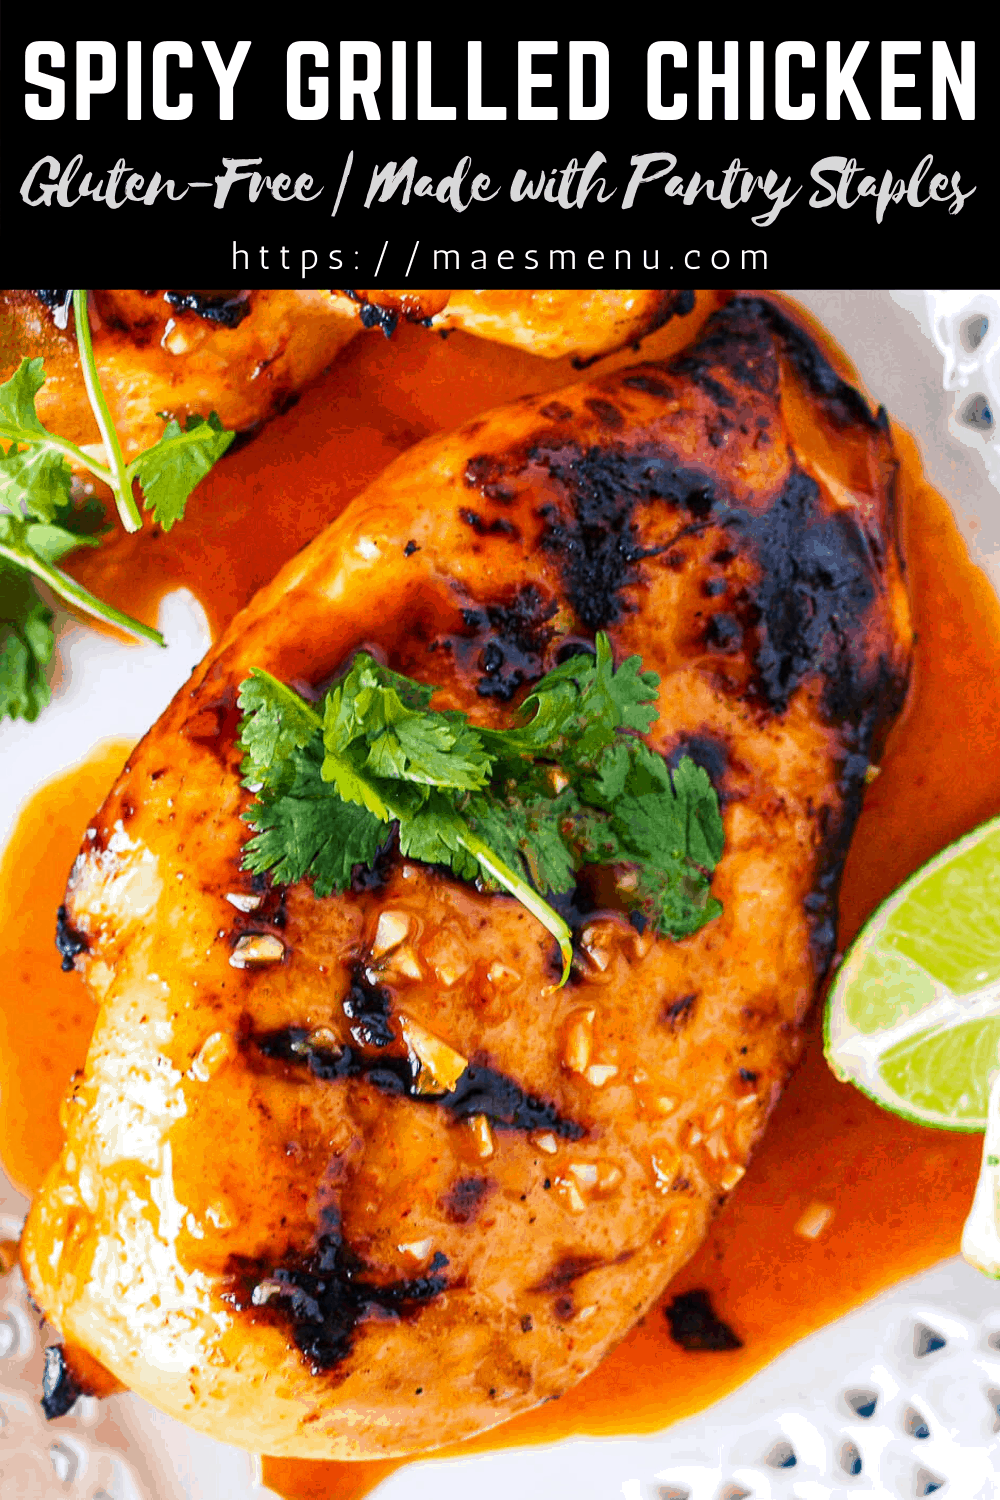 A pinterest pin for Spicy Grilled Chicken with an up-close picture of a chicken breast.